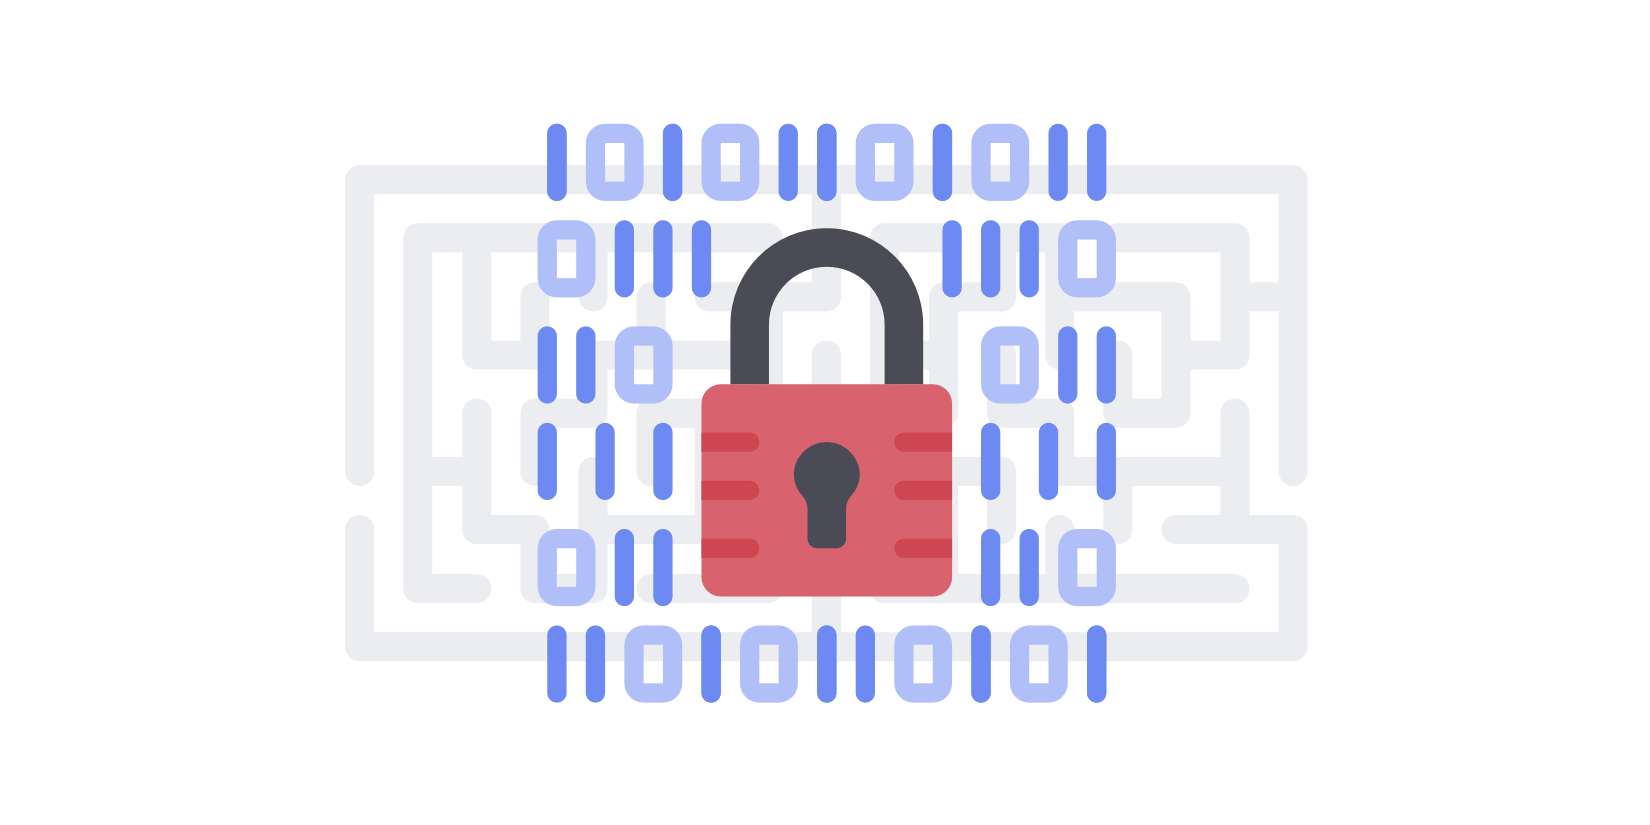 Image representing complication in WhatsApp API and it's Encrypted nature. Morph.ai WhatsApp Solution makes it easier for you so you don't have to worry about any of this.